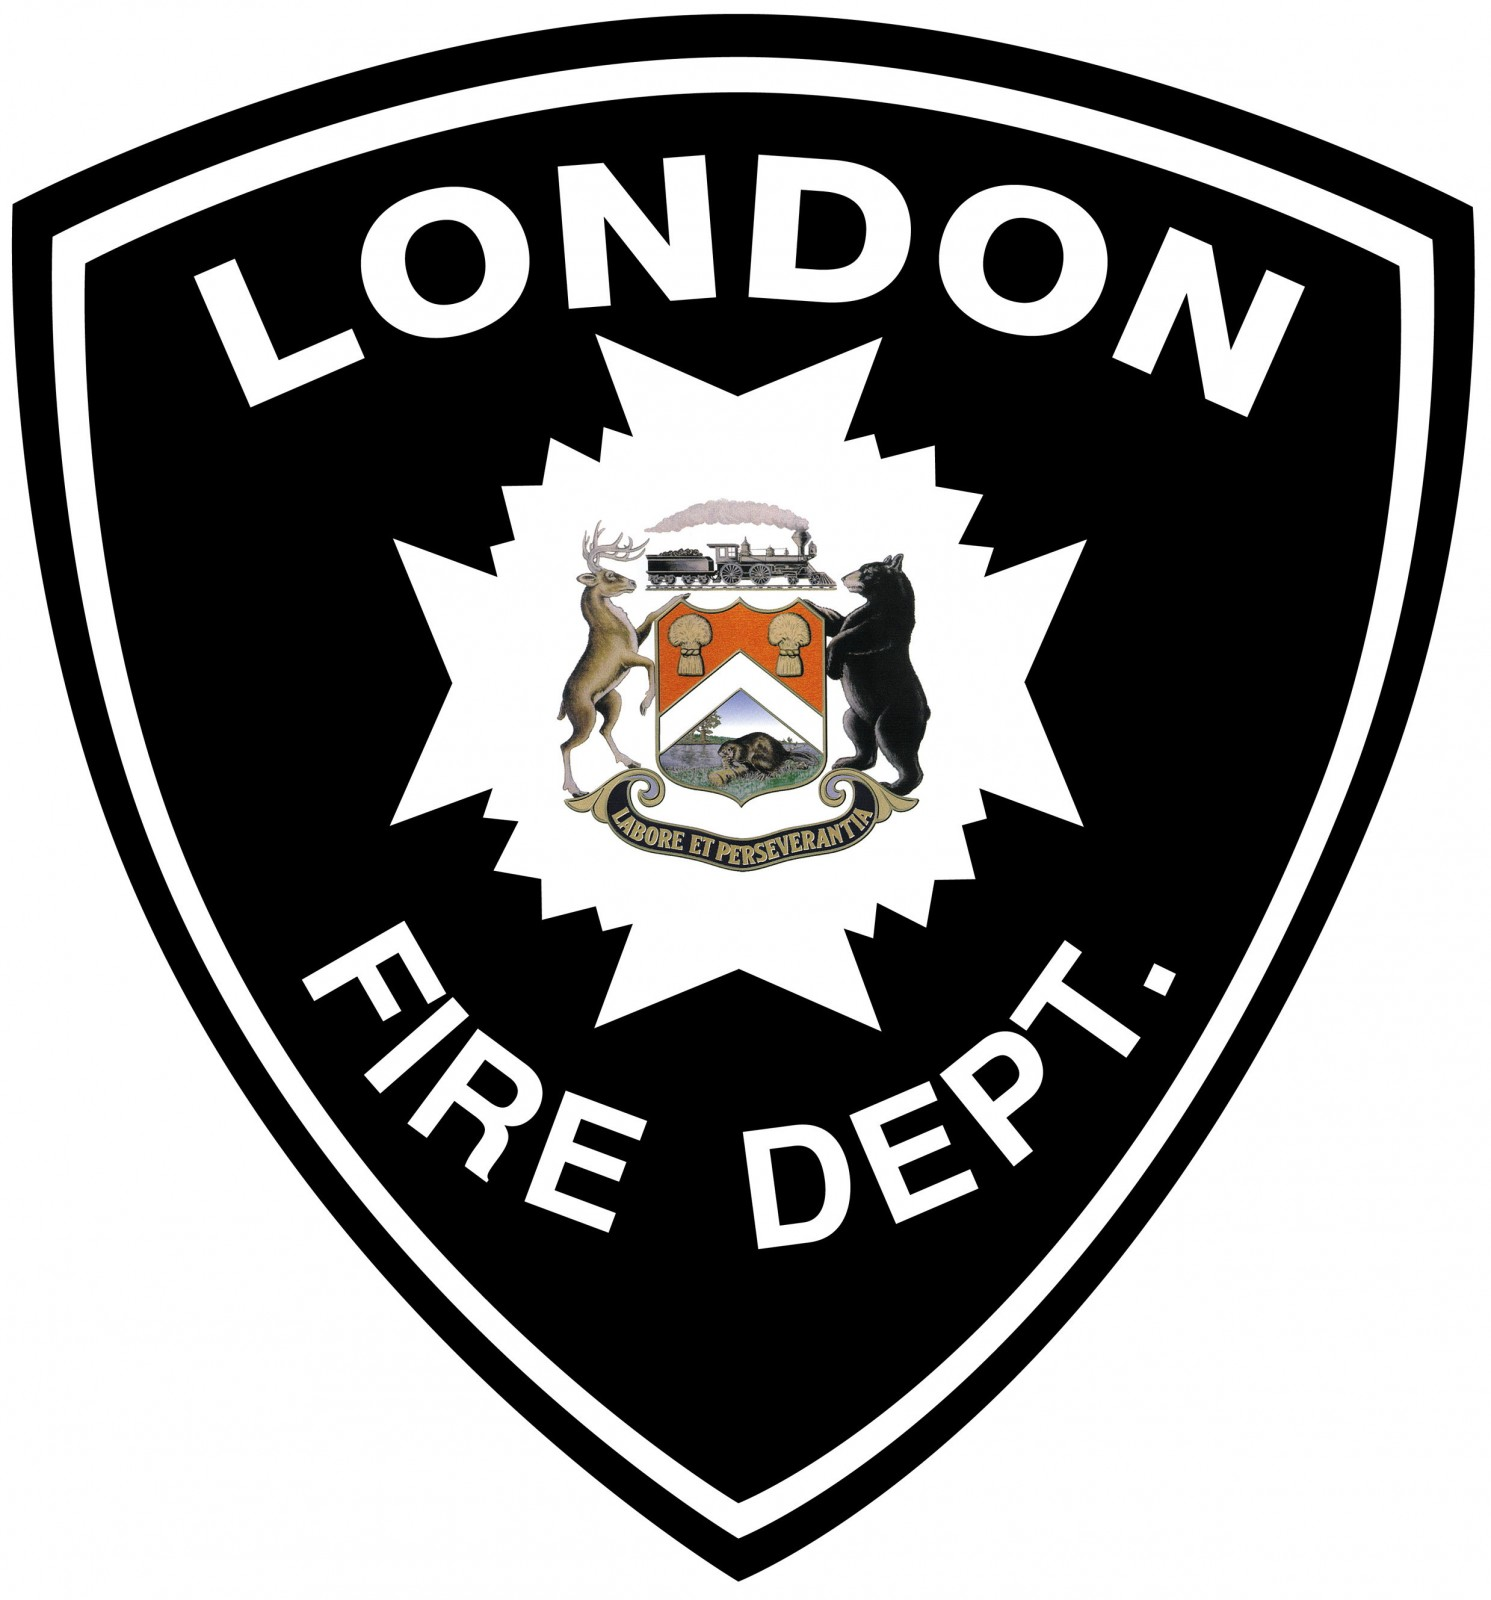 London Fire Dept